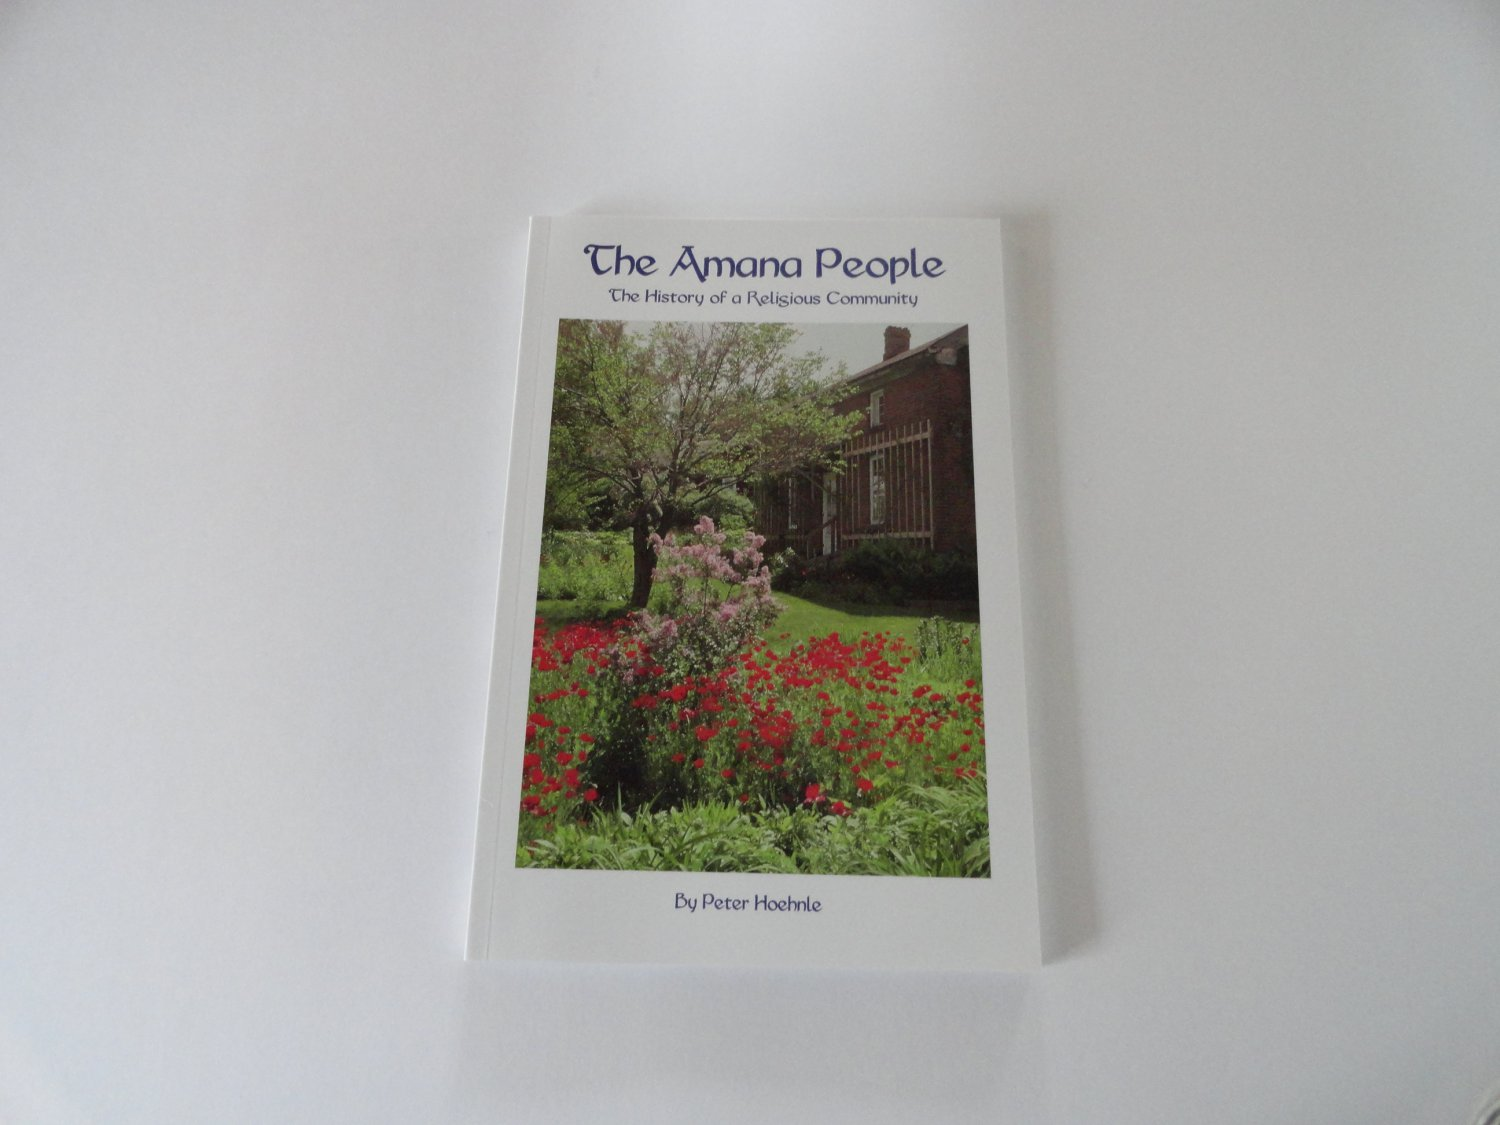 The Amana People: The History of a Religious Community